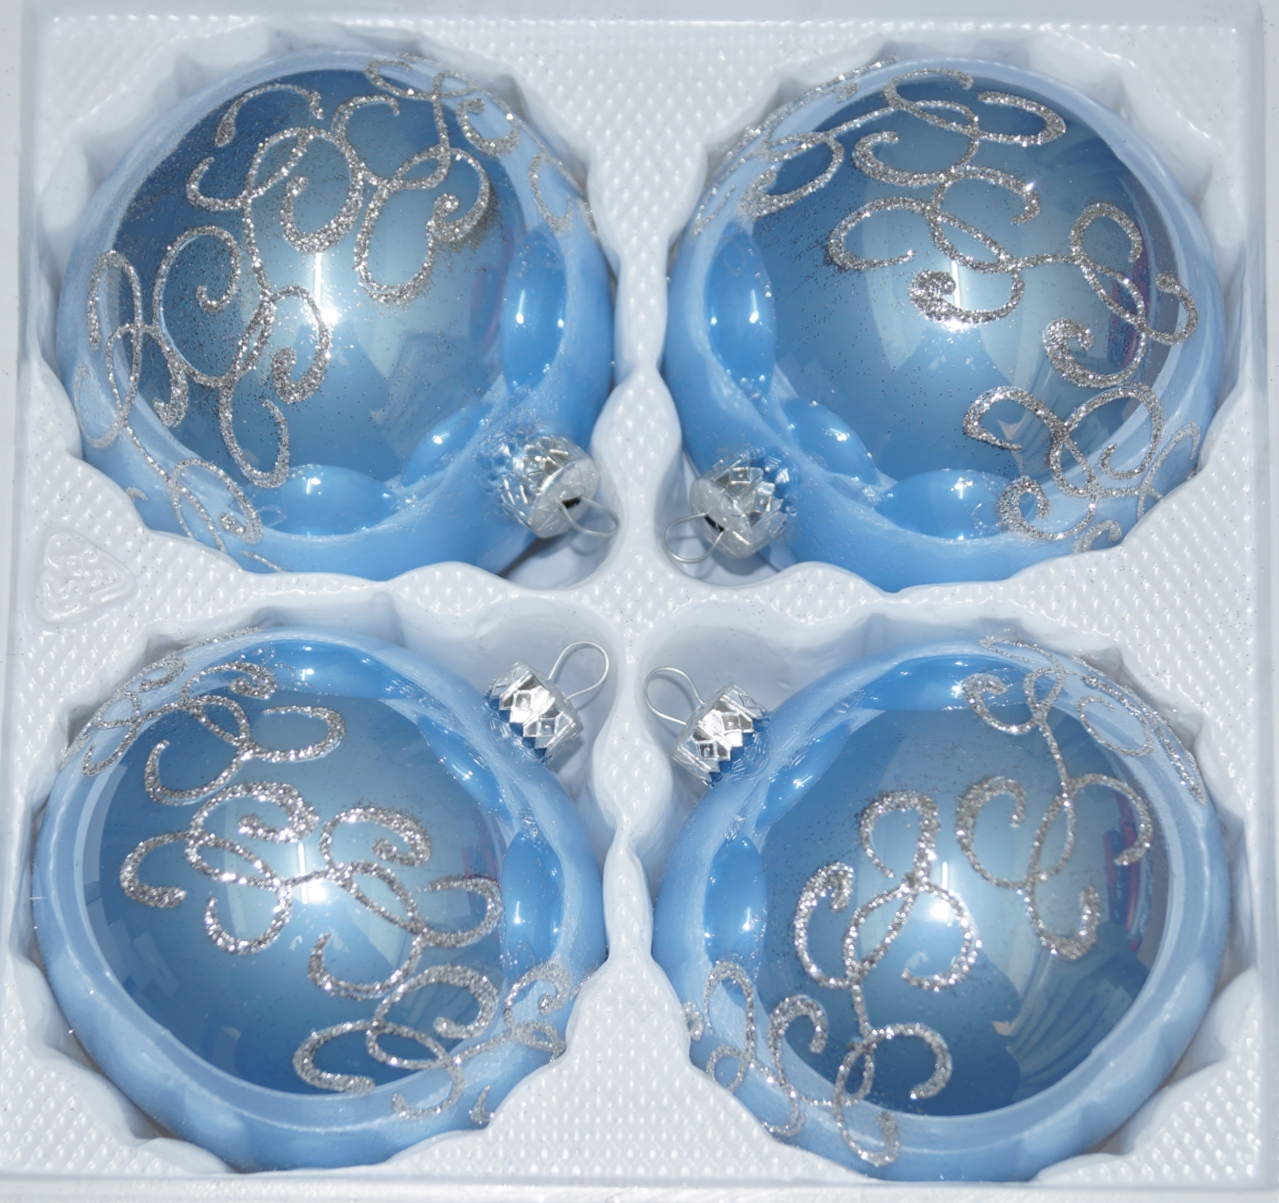 Silberne Weihnachtskugeln.4 Pcs Christmas Baubles Set 10cm O In Highgloss Blue Silver Ornaments